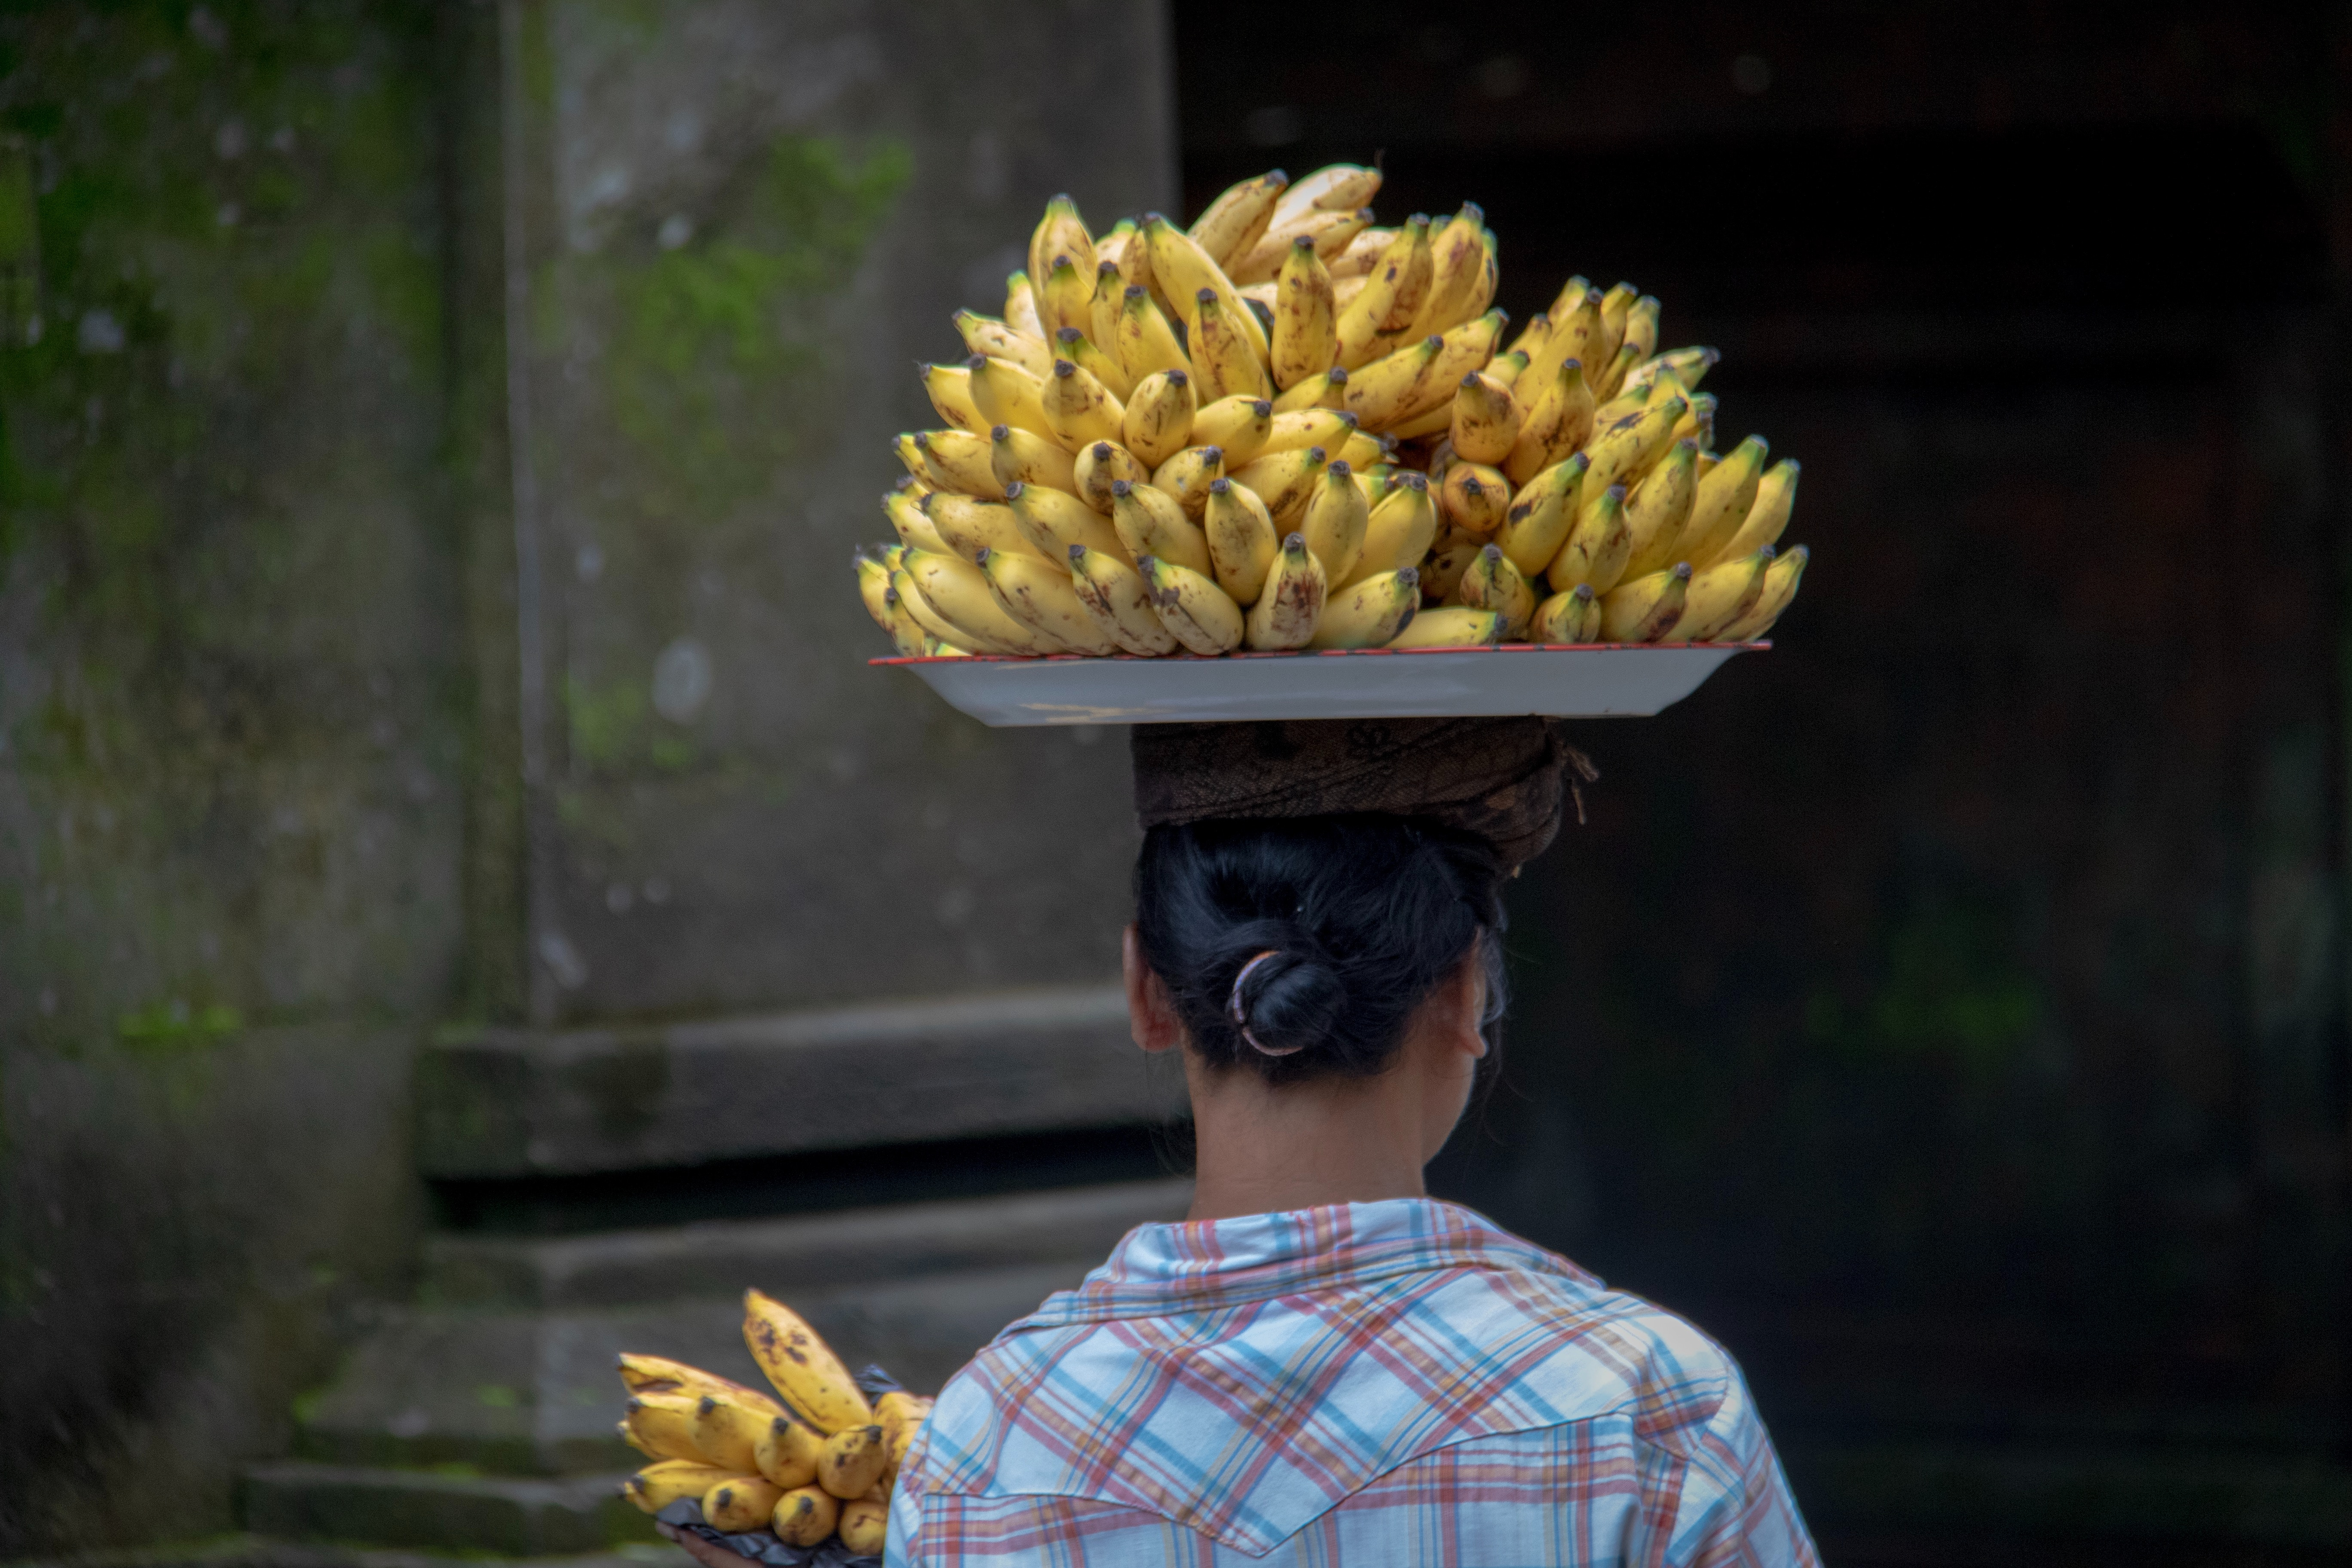 Premium Bananas Indonesia